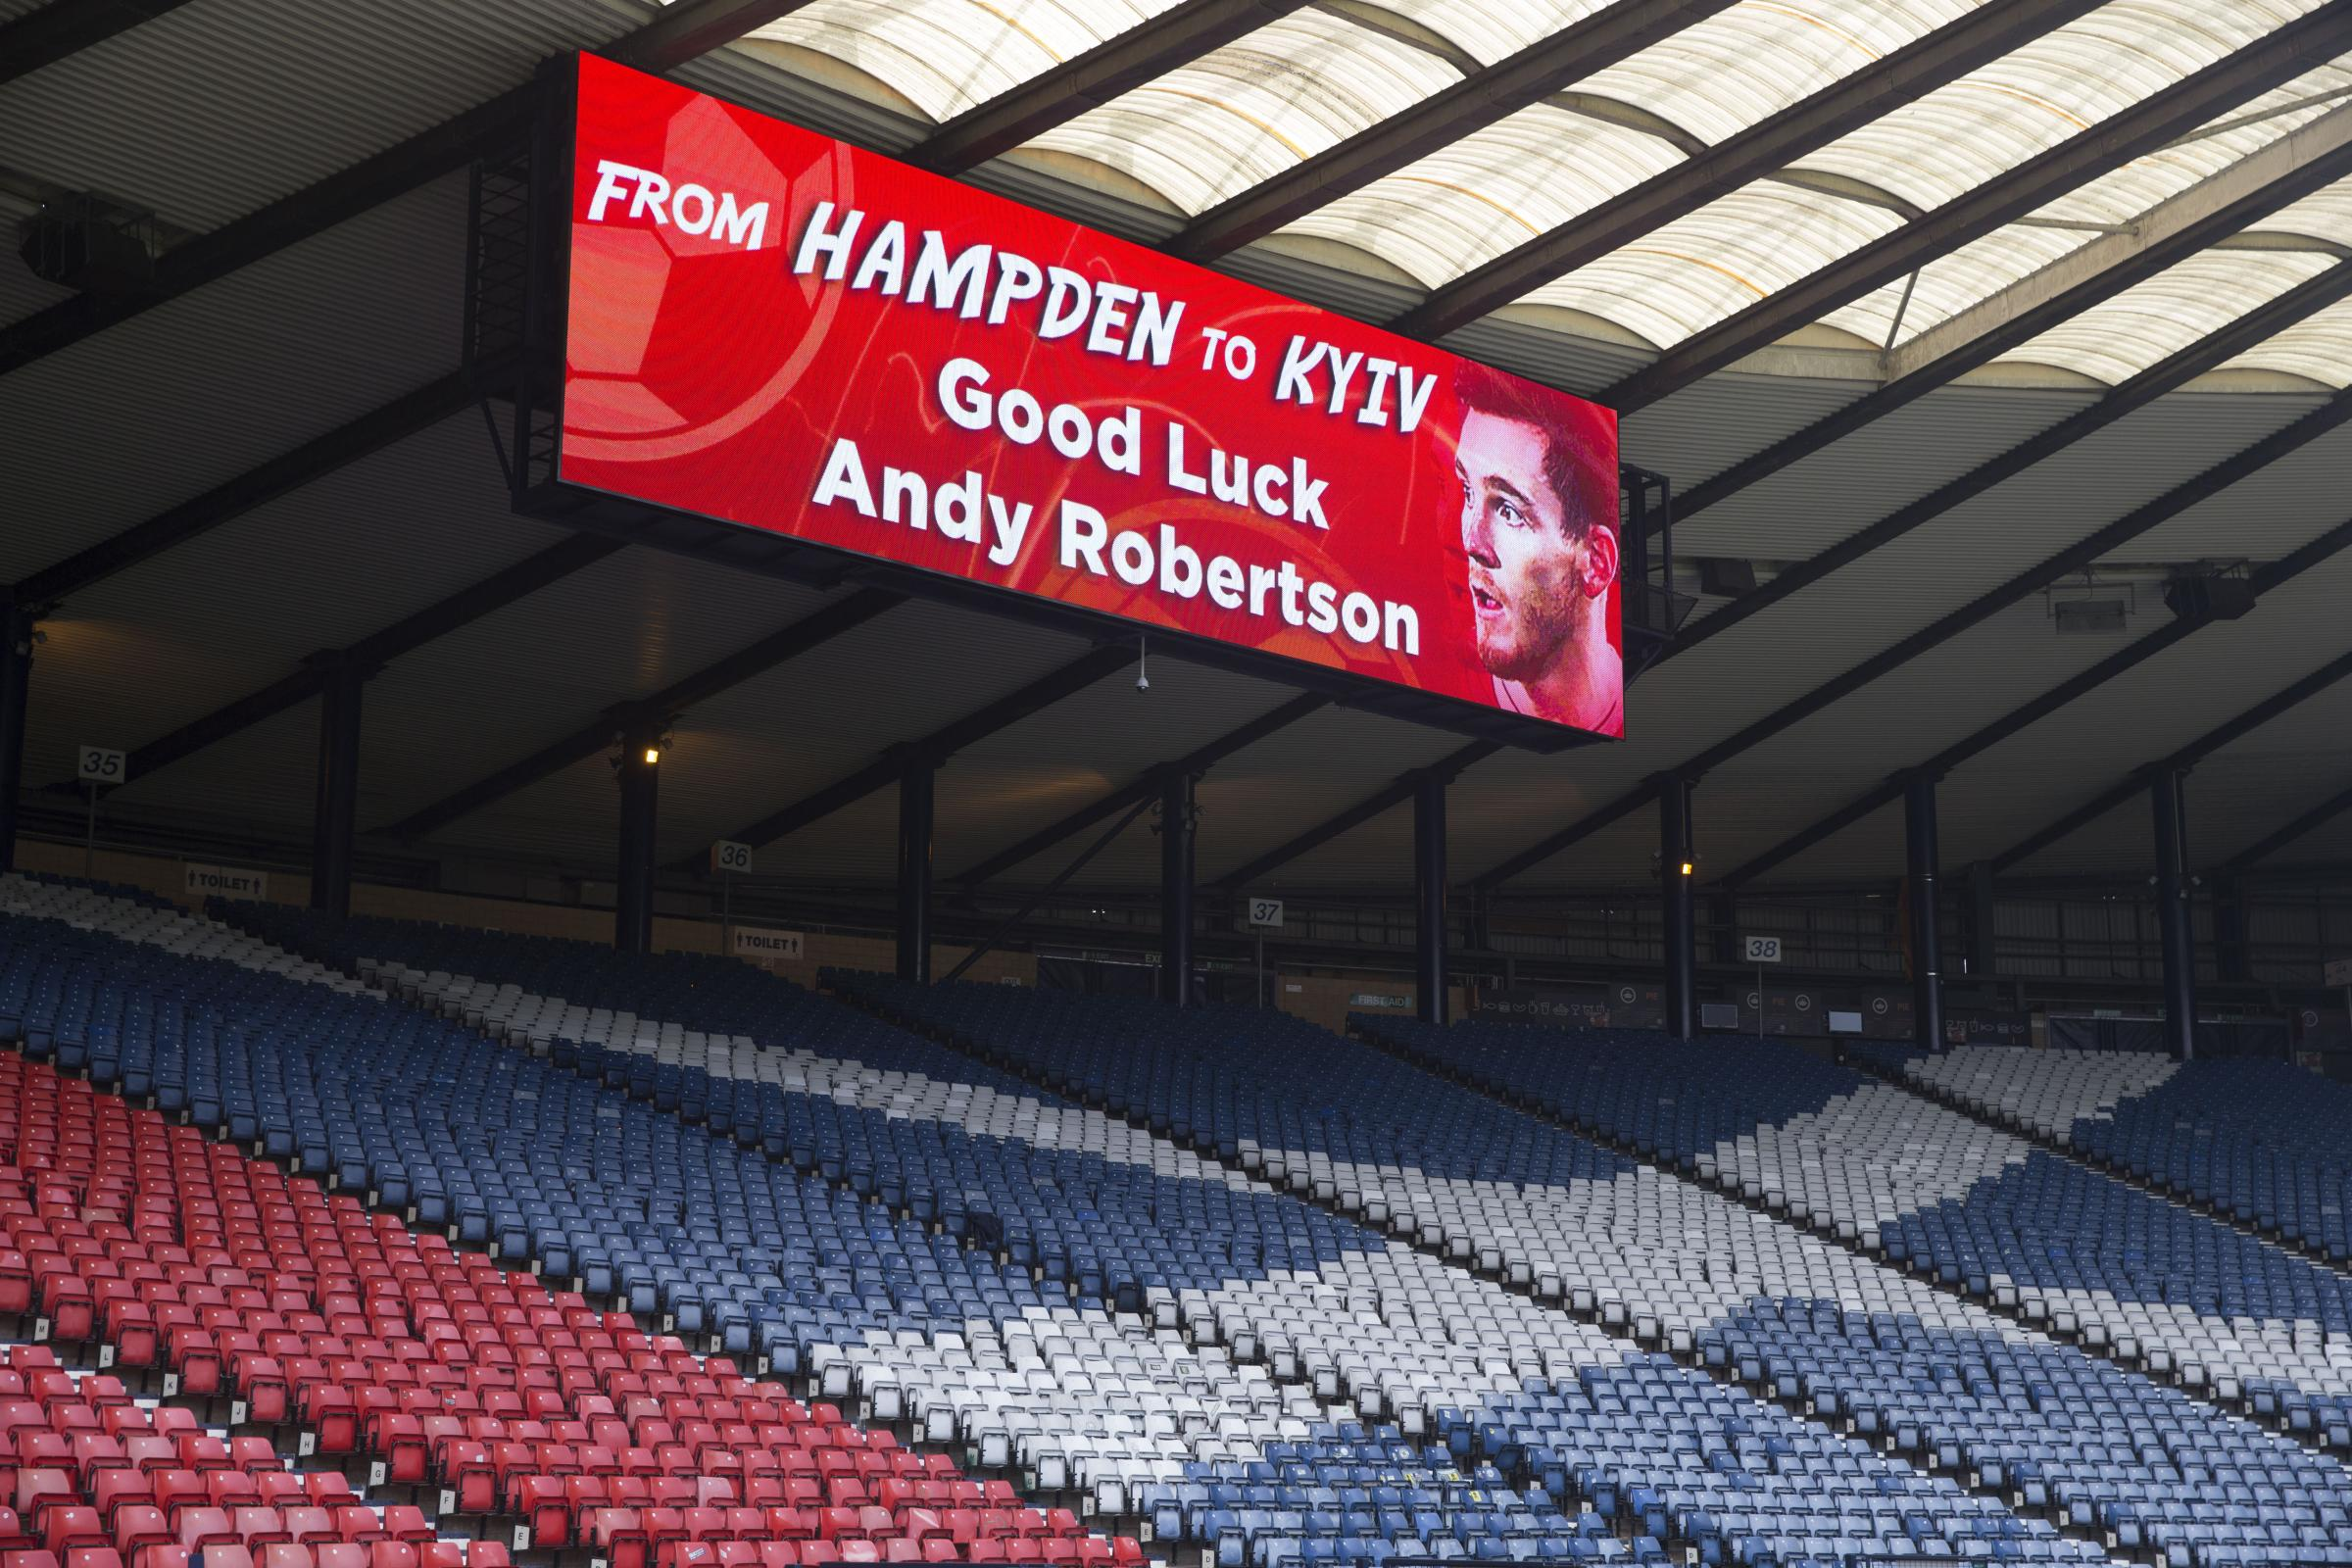 Big screens show good luck message for Andy Robertson and champions league final. PIcture: Jeff Holmes